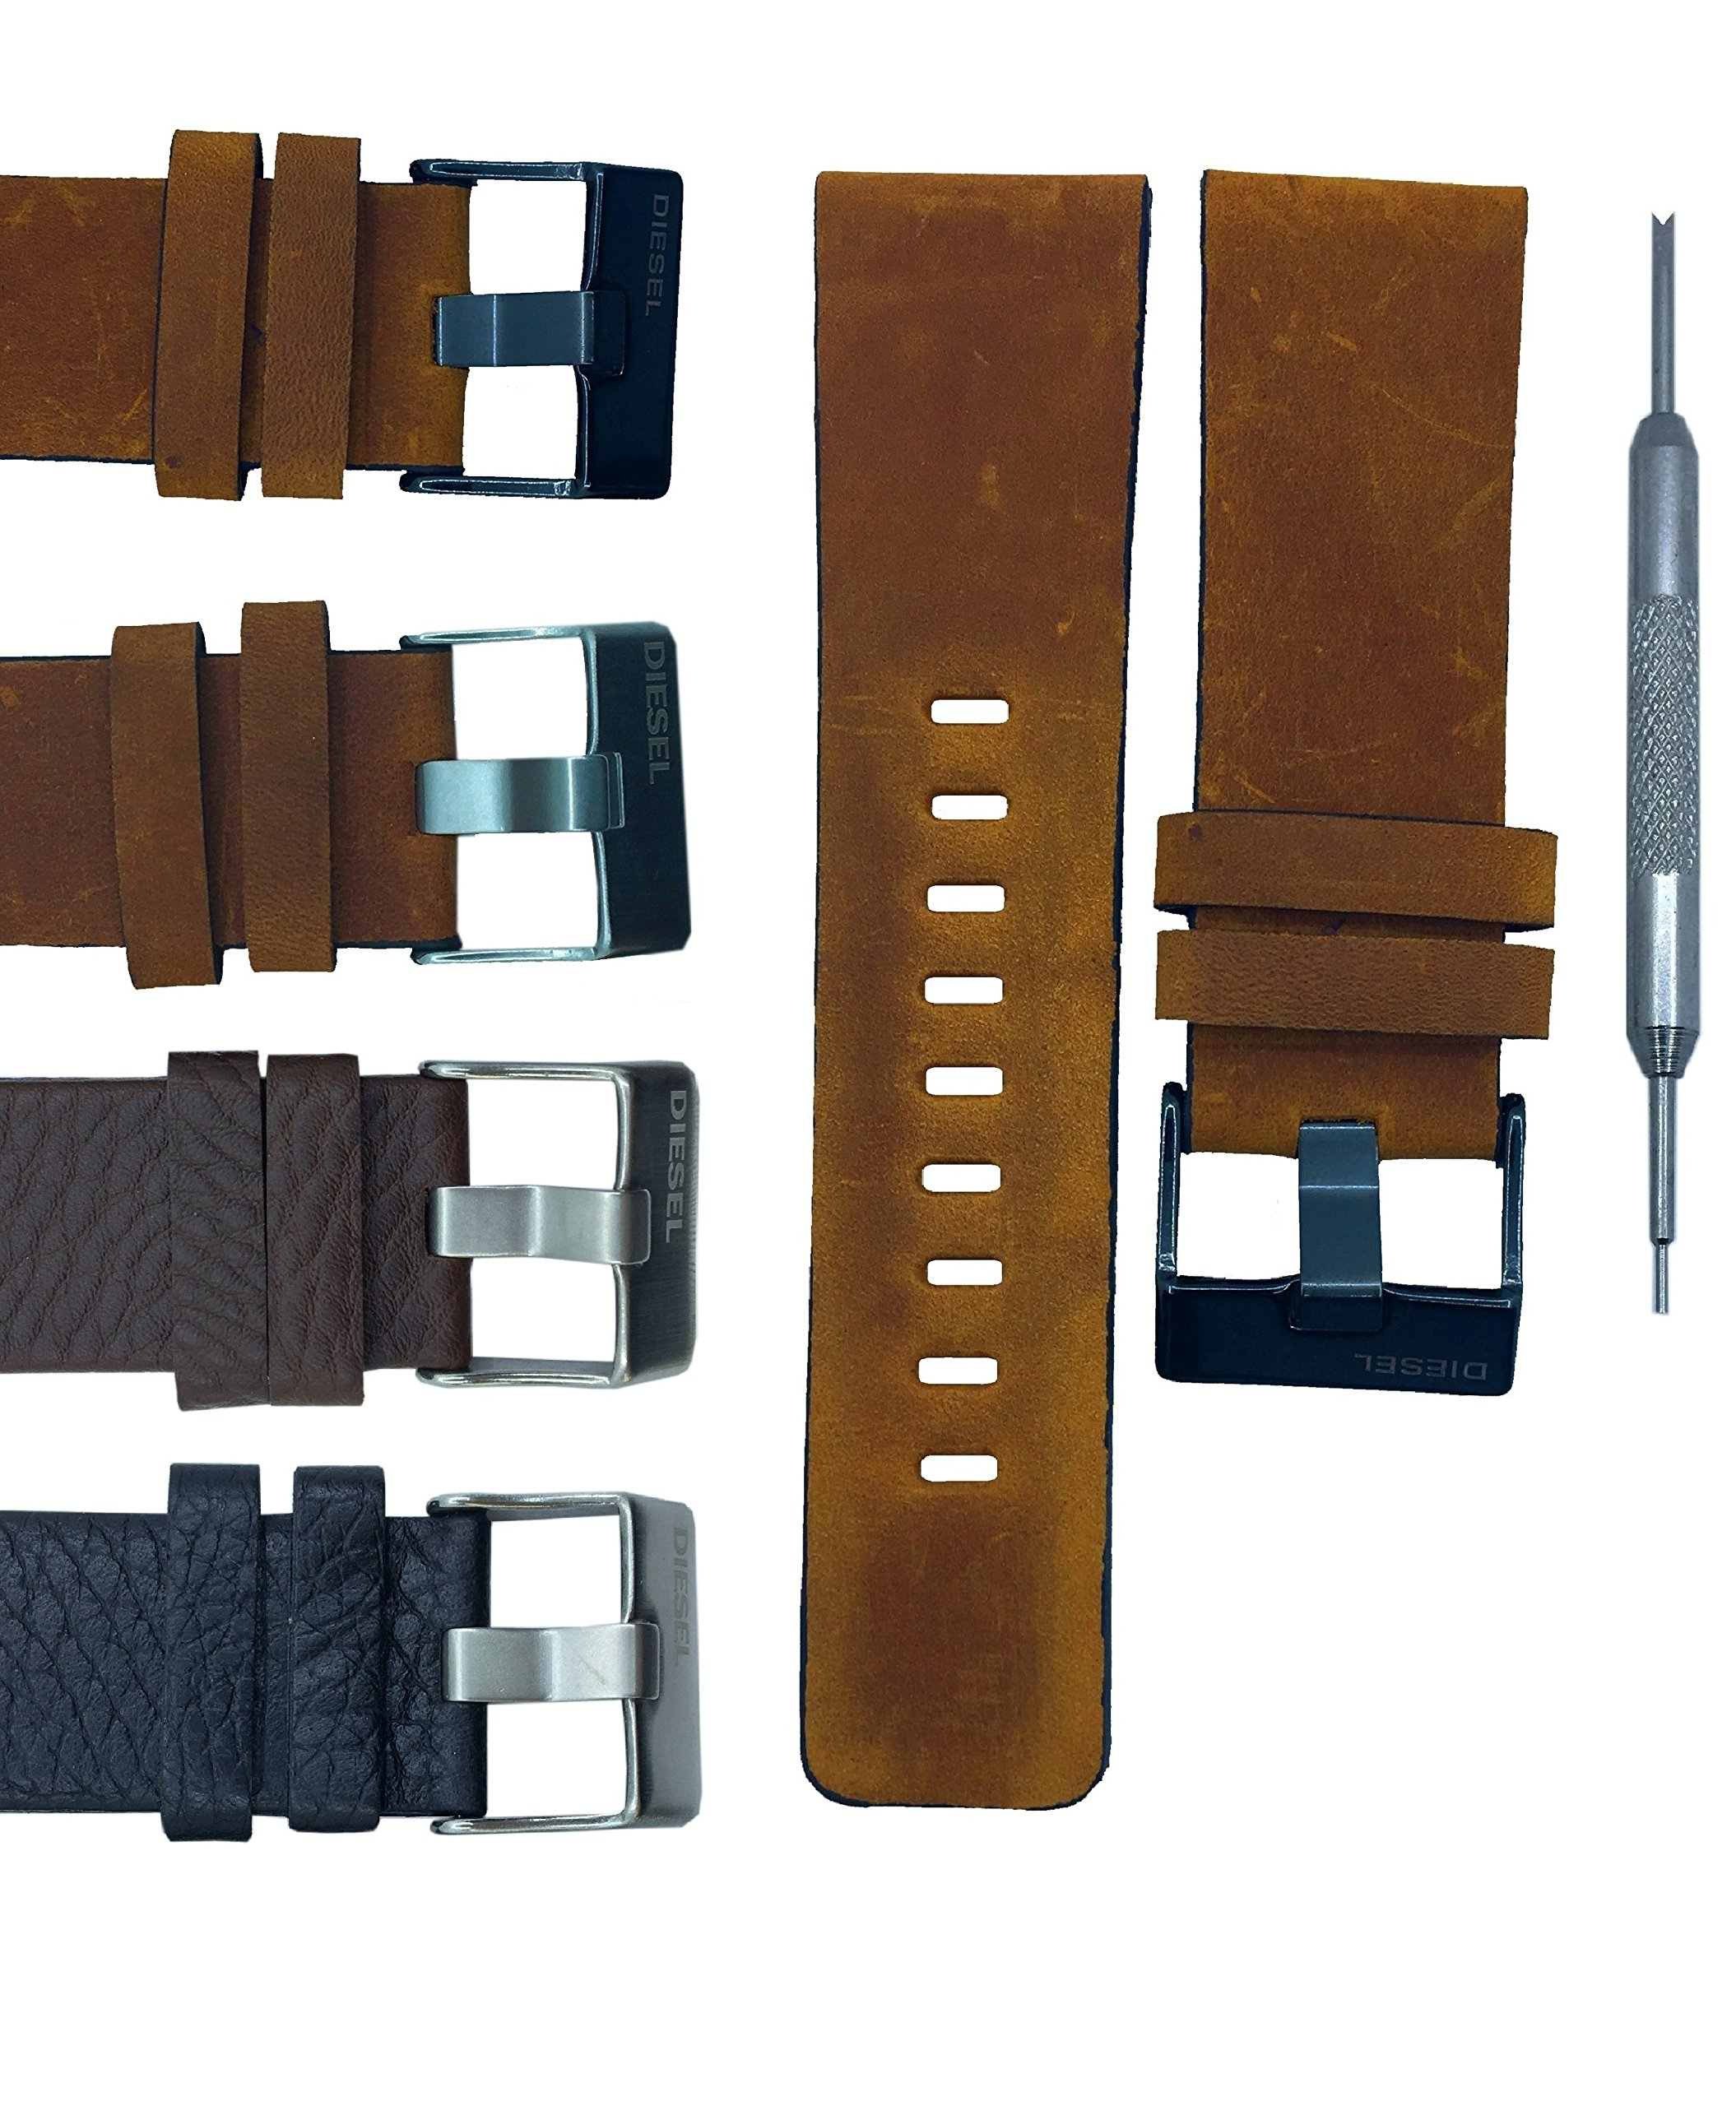 Genuine Leather Watch Band Strap for DZ1183 DZ1347 DZ1272 DZ4343 - Free Spring Bar Tool (26mm, Light Brown(Black Buckle))